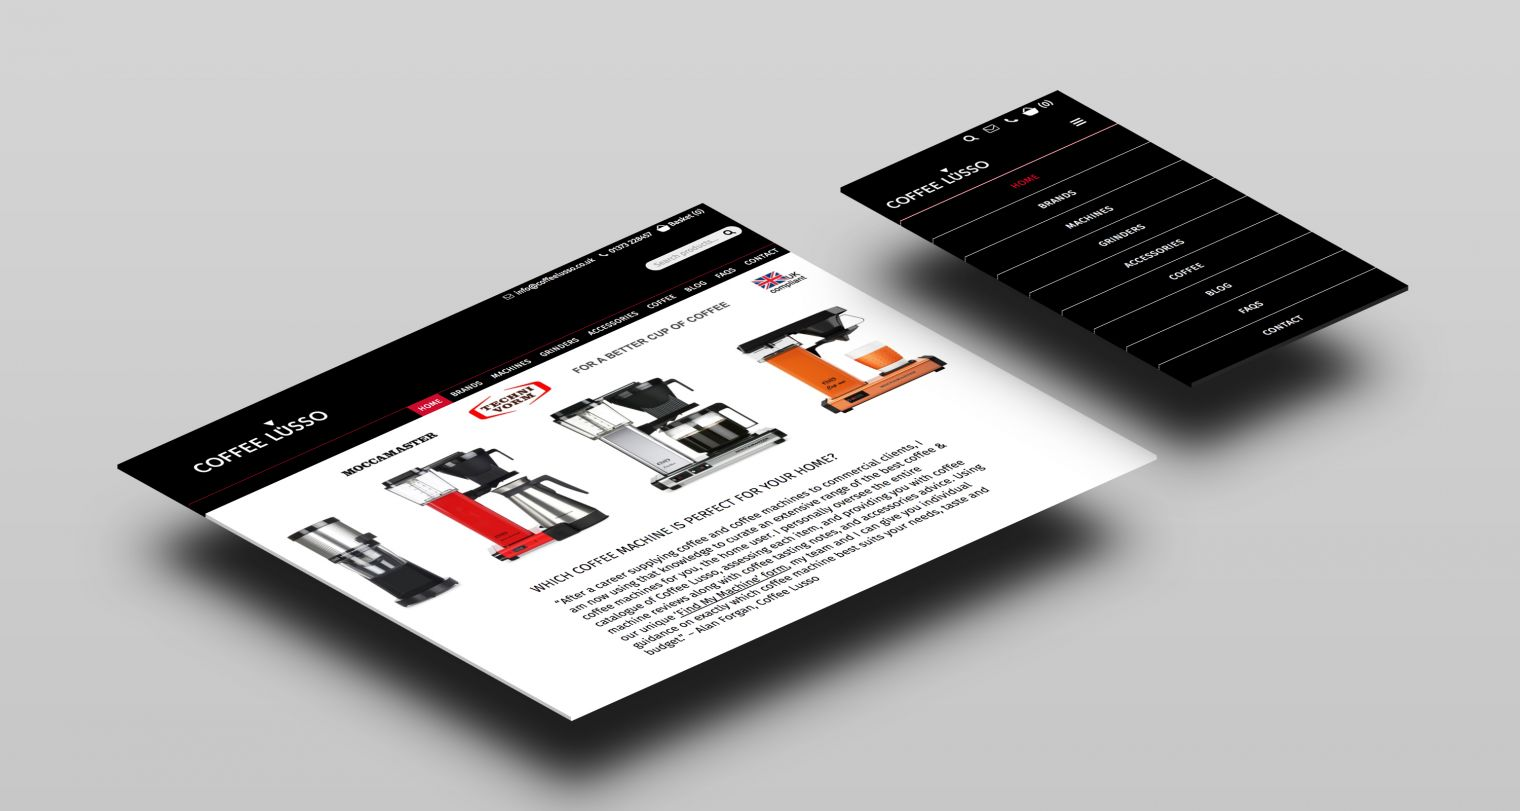 mobile-friendly-web-design-layout